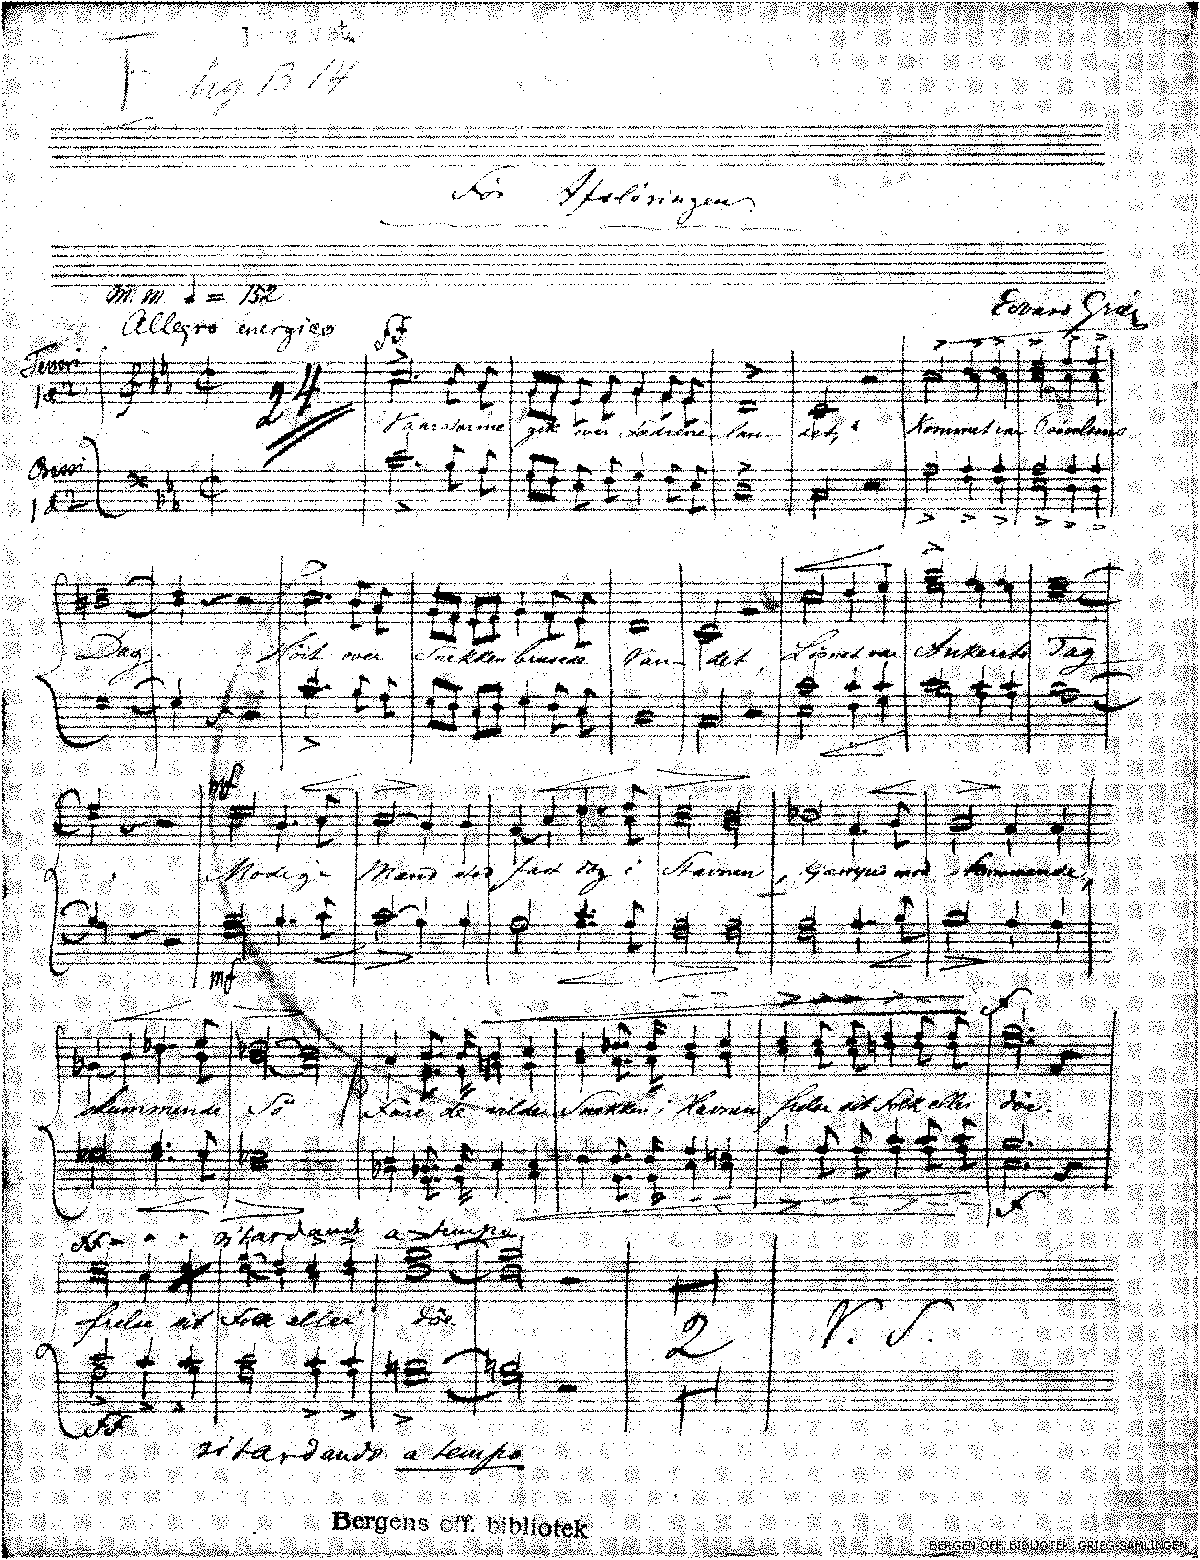 PMLP61876-Grieg Cantata at W.Christies Statue EG 158 CHOIR PARTS.pdf